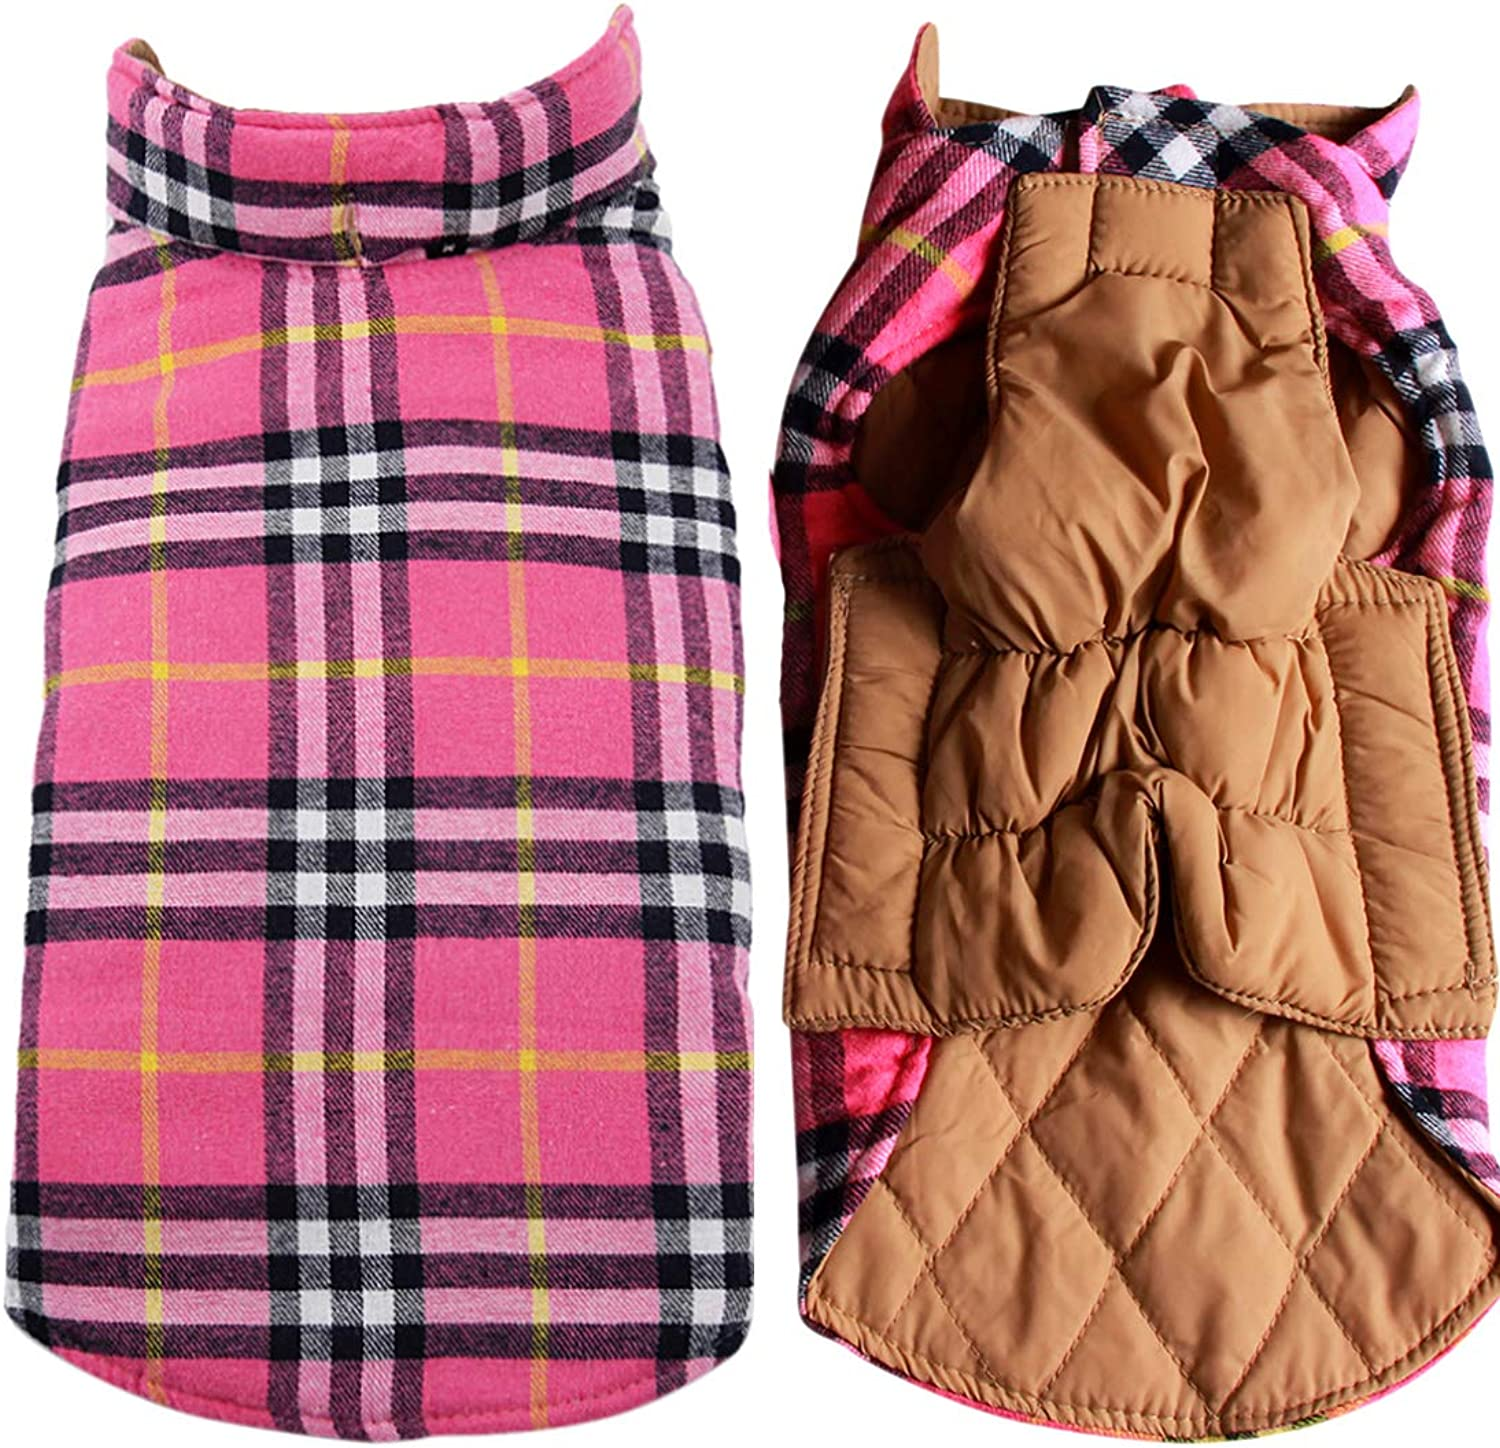 JoyDaog Reversible Plaid Dog Coat(7 Sizes) Waterproof Windproof Warm for Cold Winter Weather Dog Jacket Pink XS